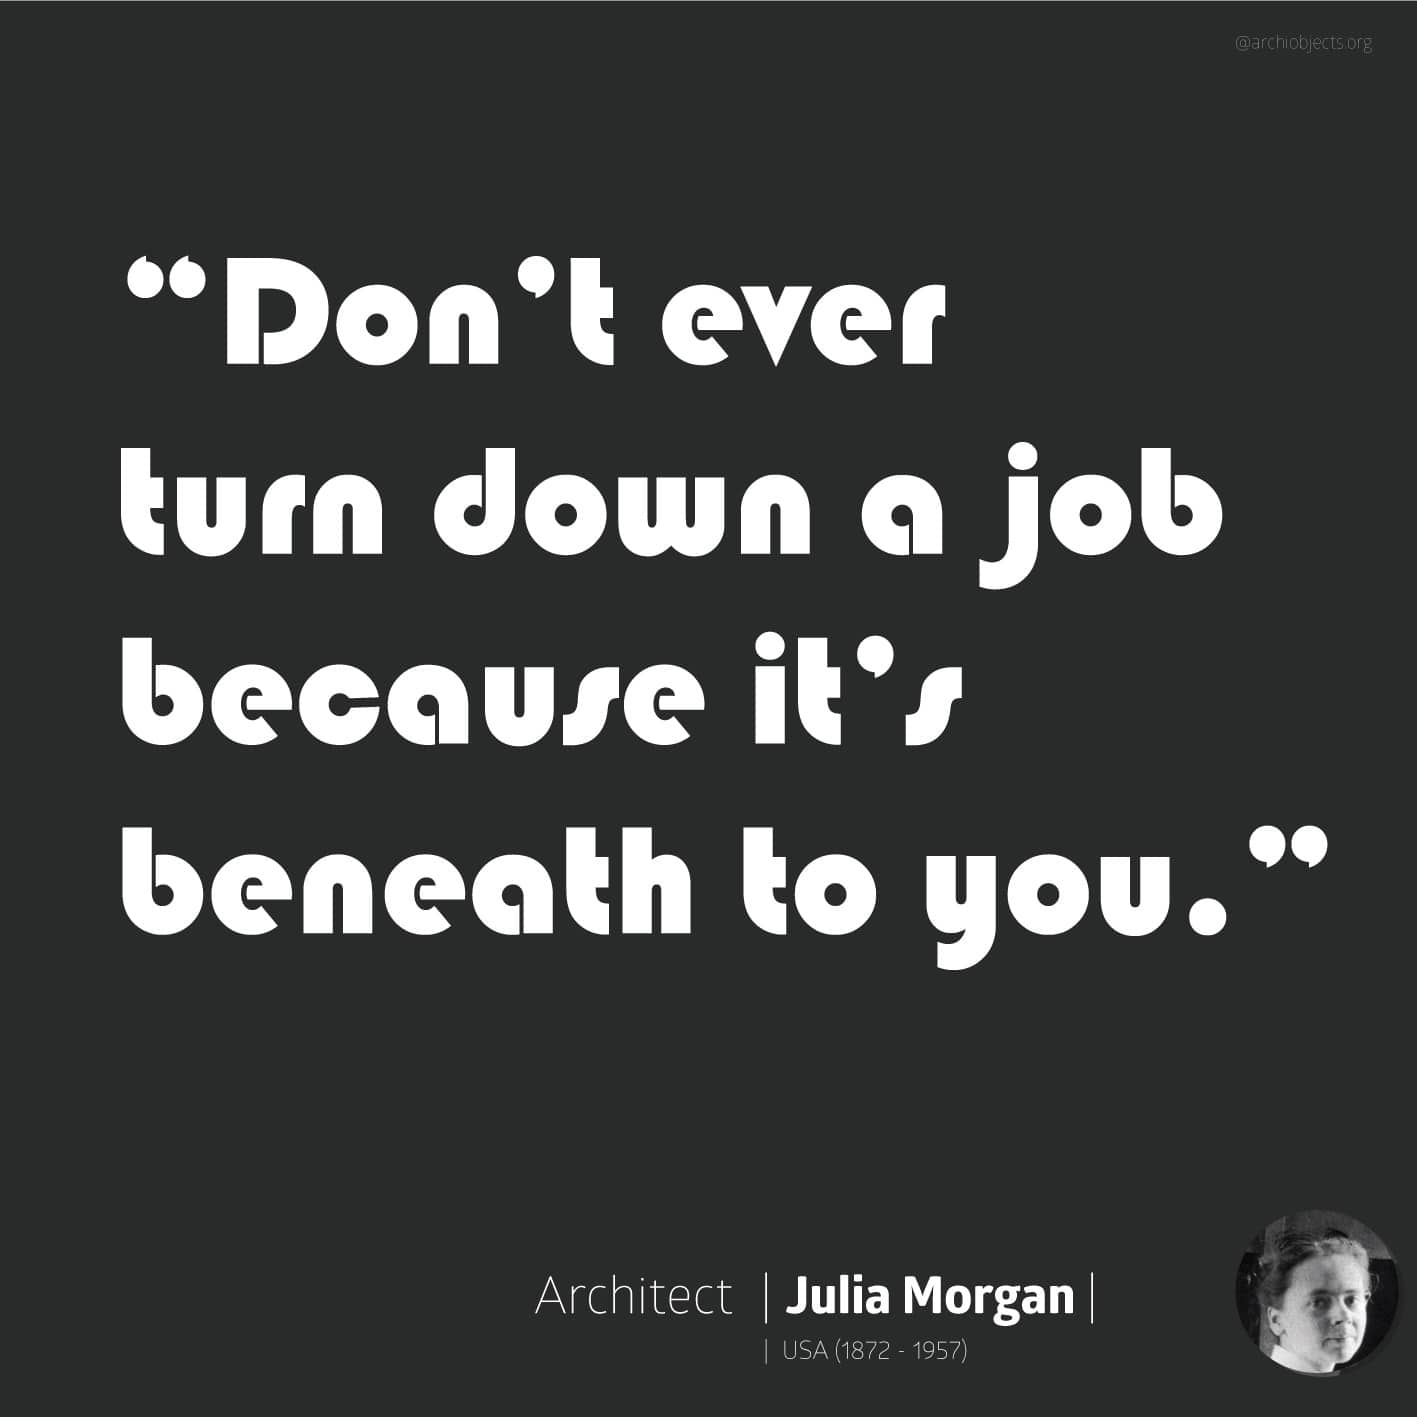 julia morgan quote